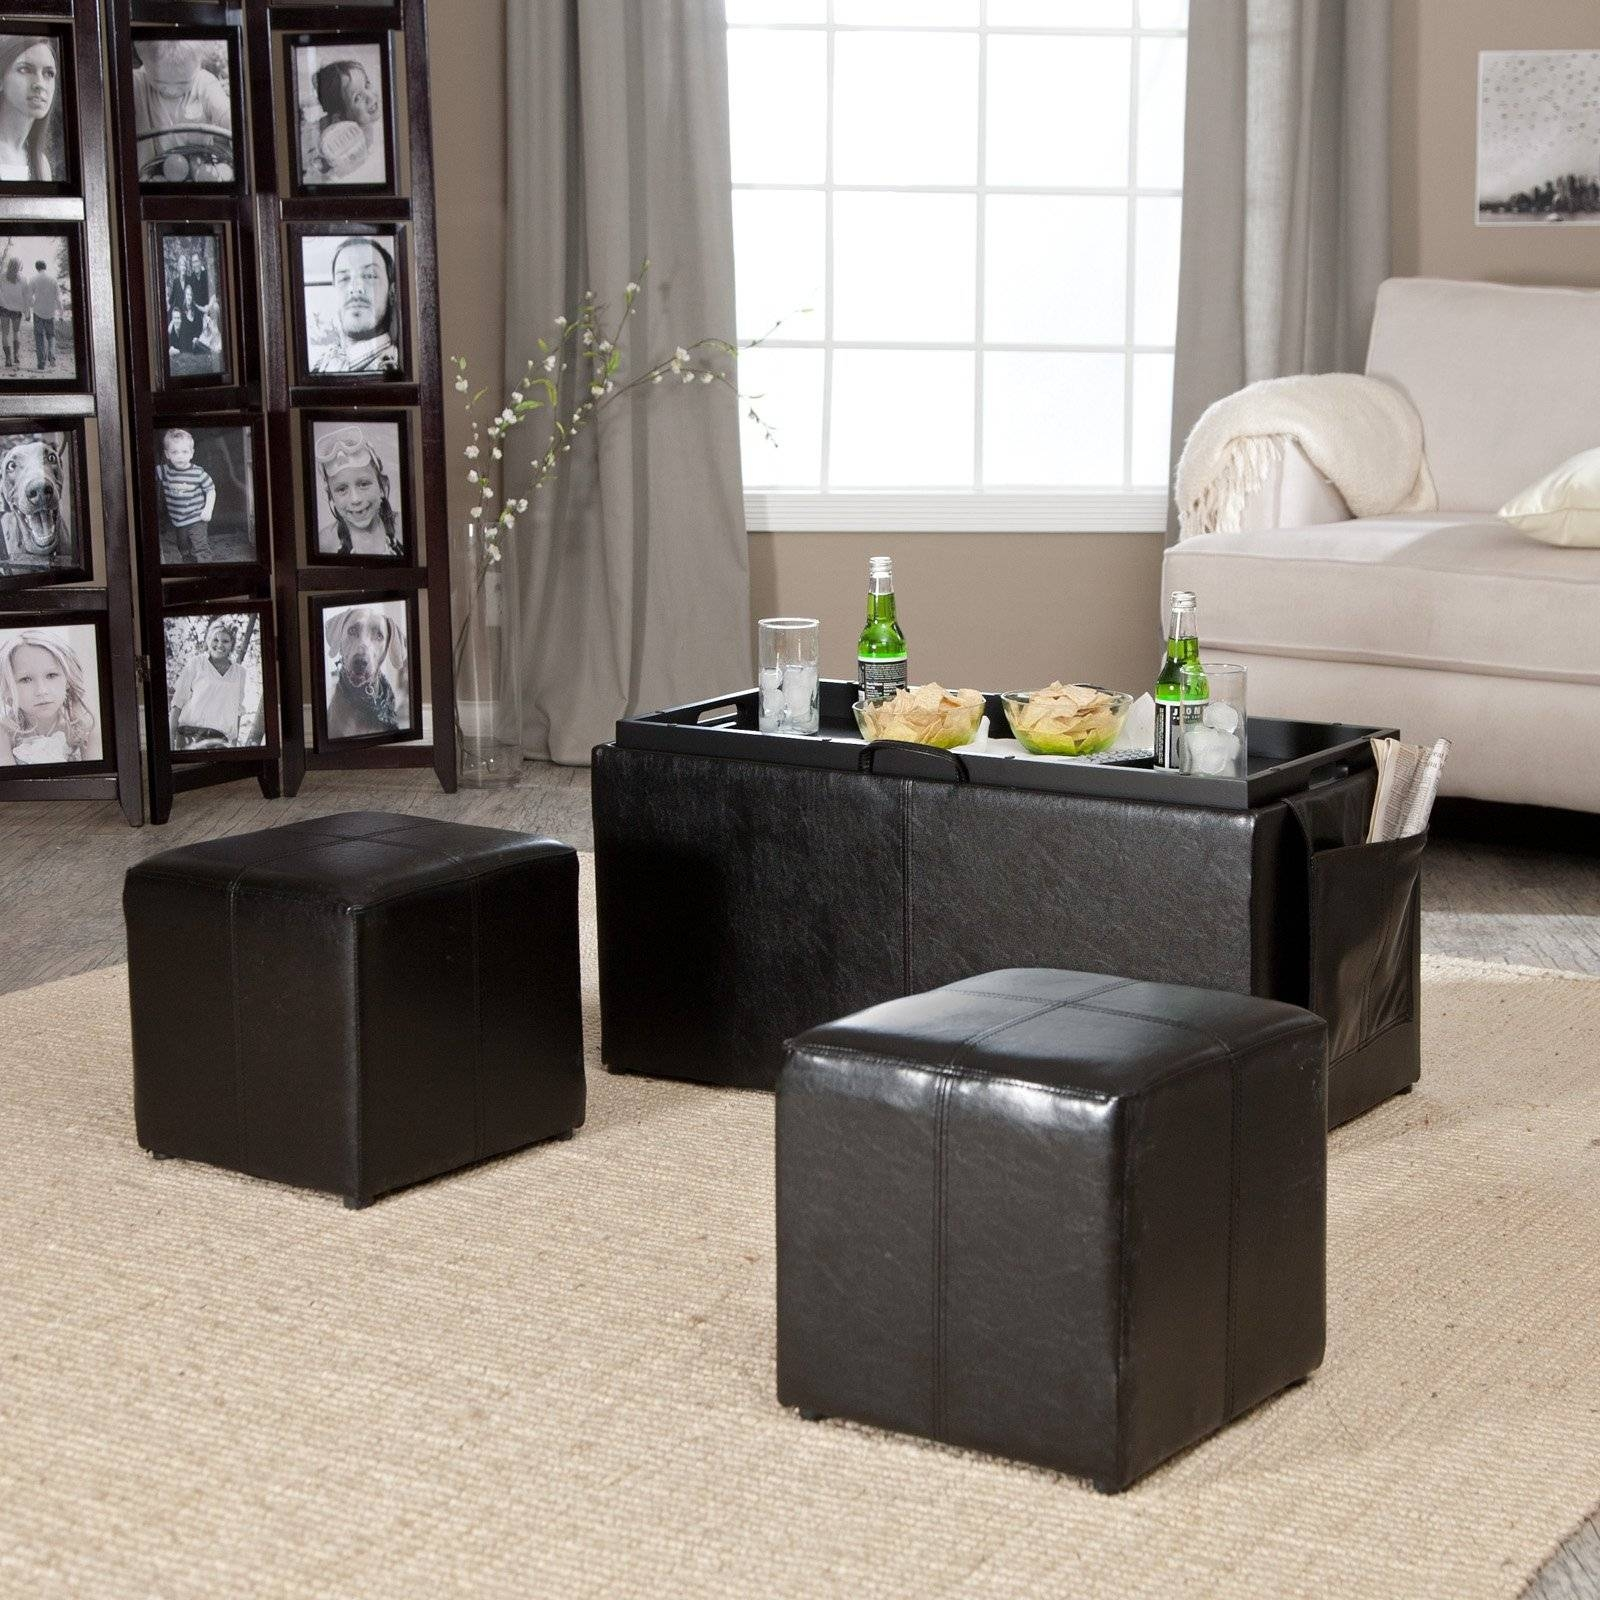 Belham Living Corbett Round Coffee Table Storage Ottoman throughout Round Coffee Table Storages (Image 2 of 30)